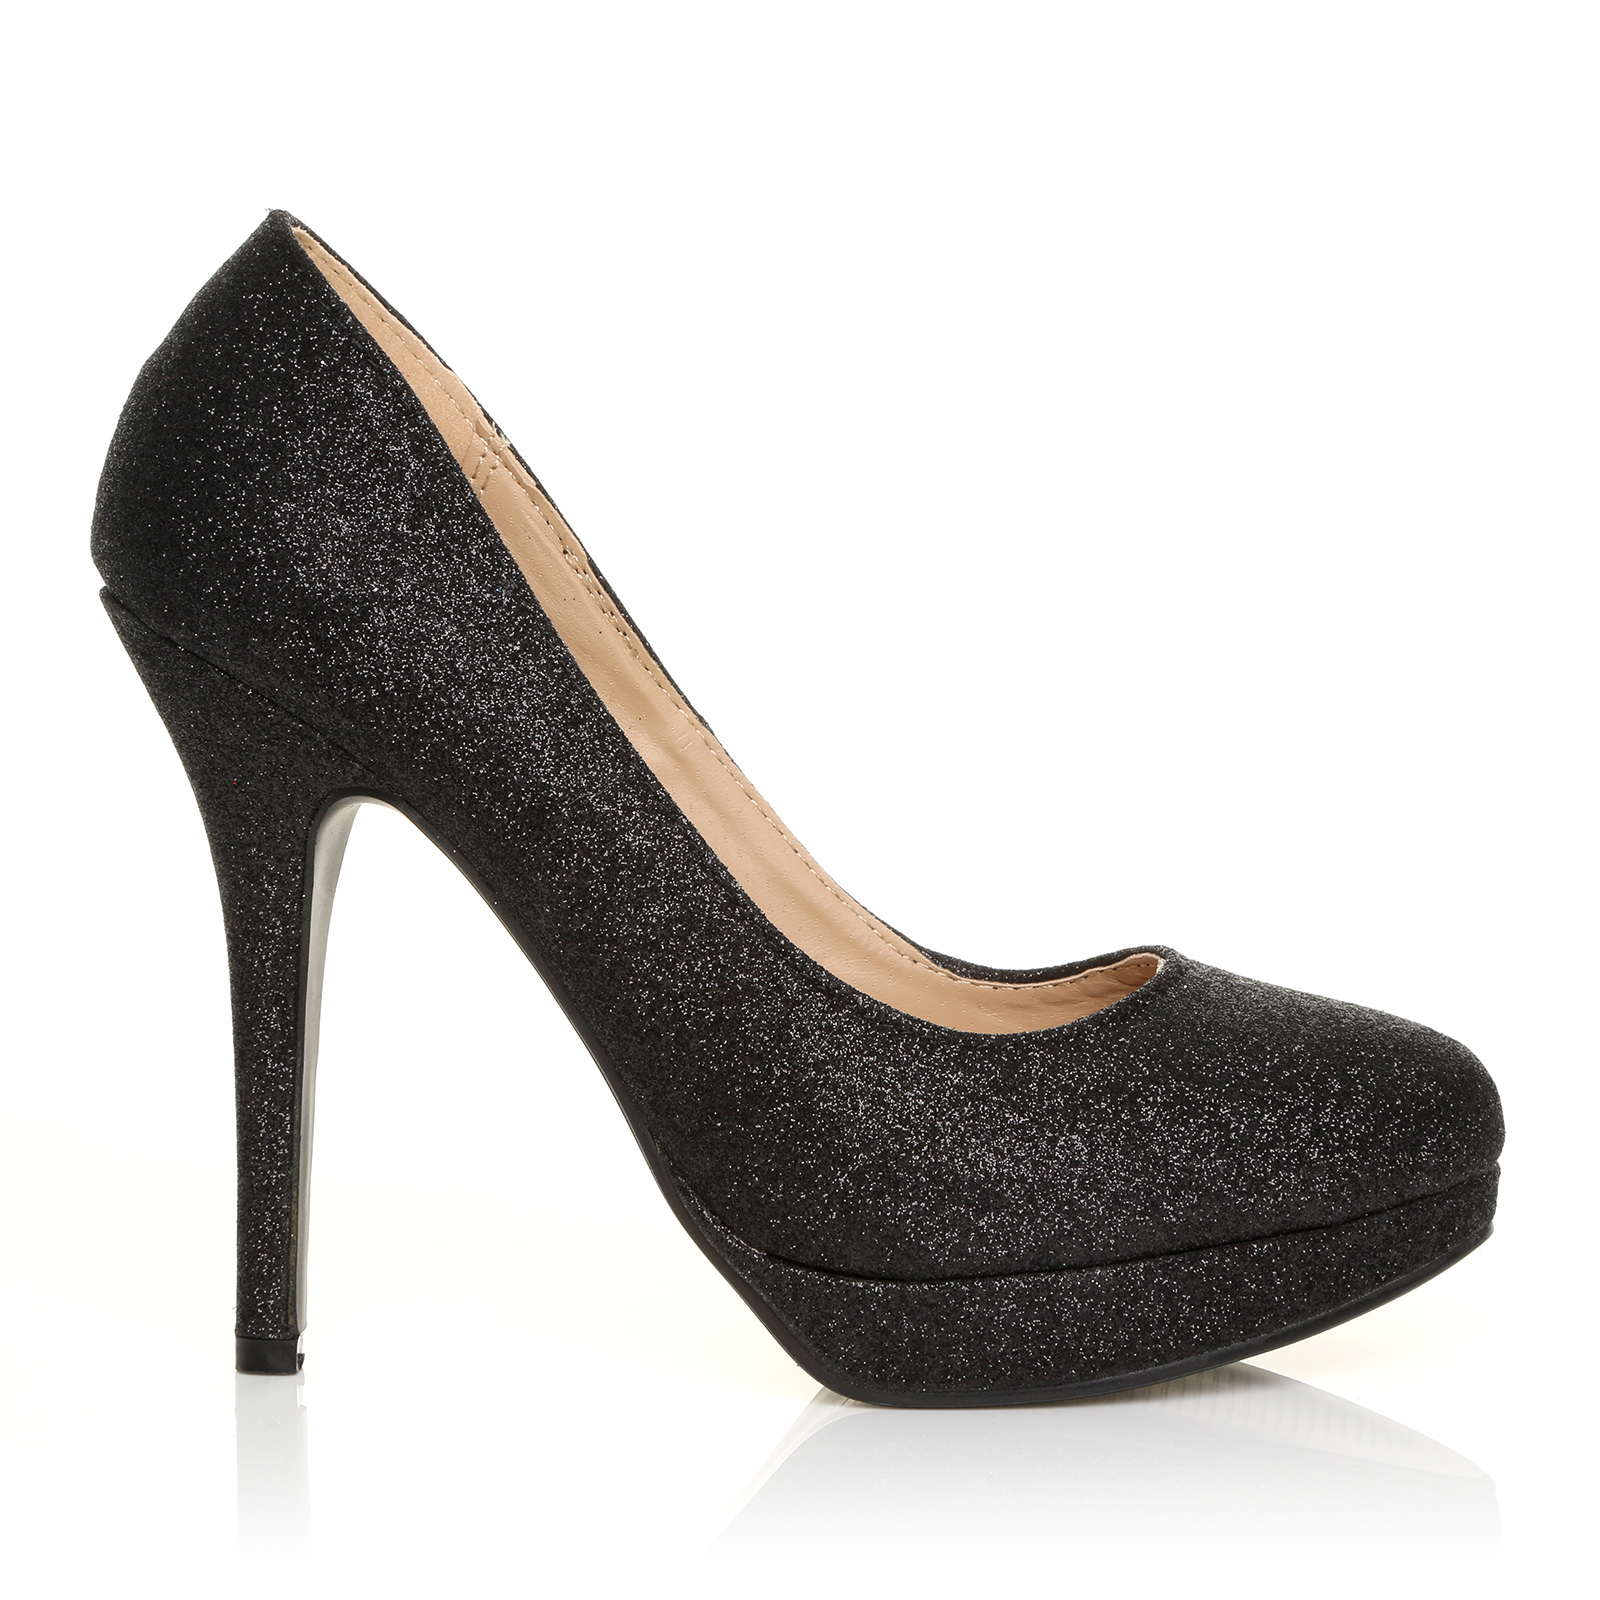 NEW-STYLE-IN-EVE-WOMENS-LADIES-HIGH-HEEL-CASUAL-SMART-WORK-PUMP-COURT-SHOES-SIZE